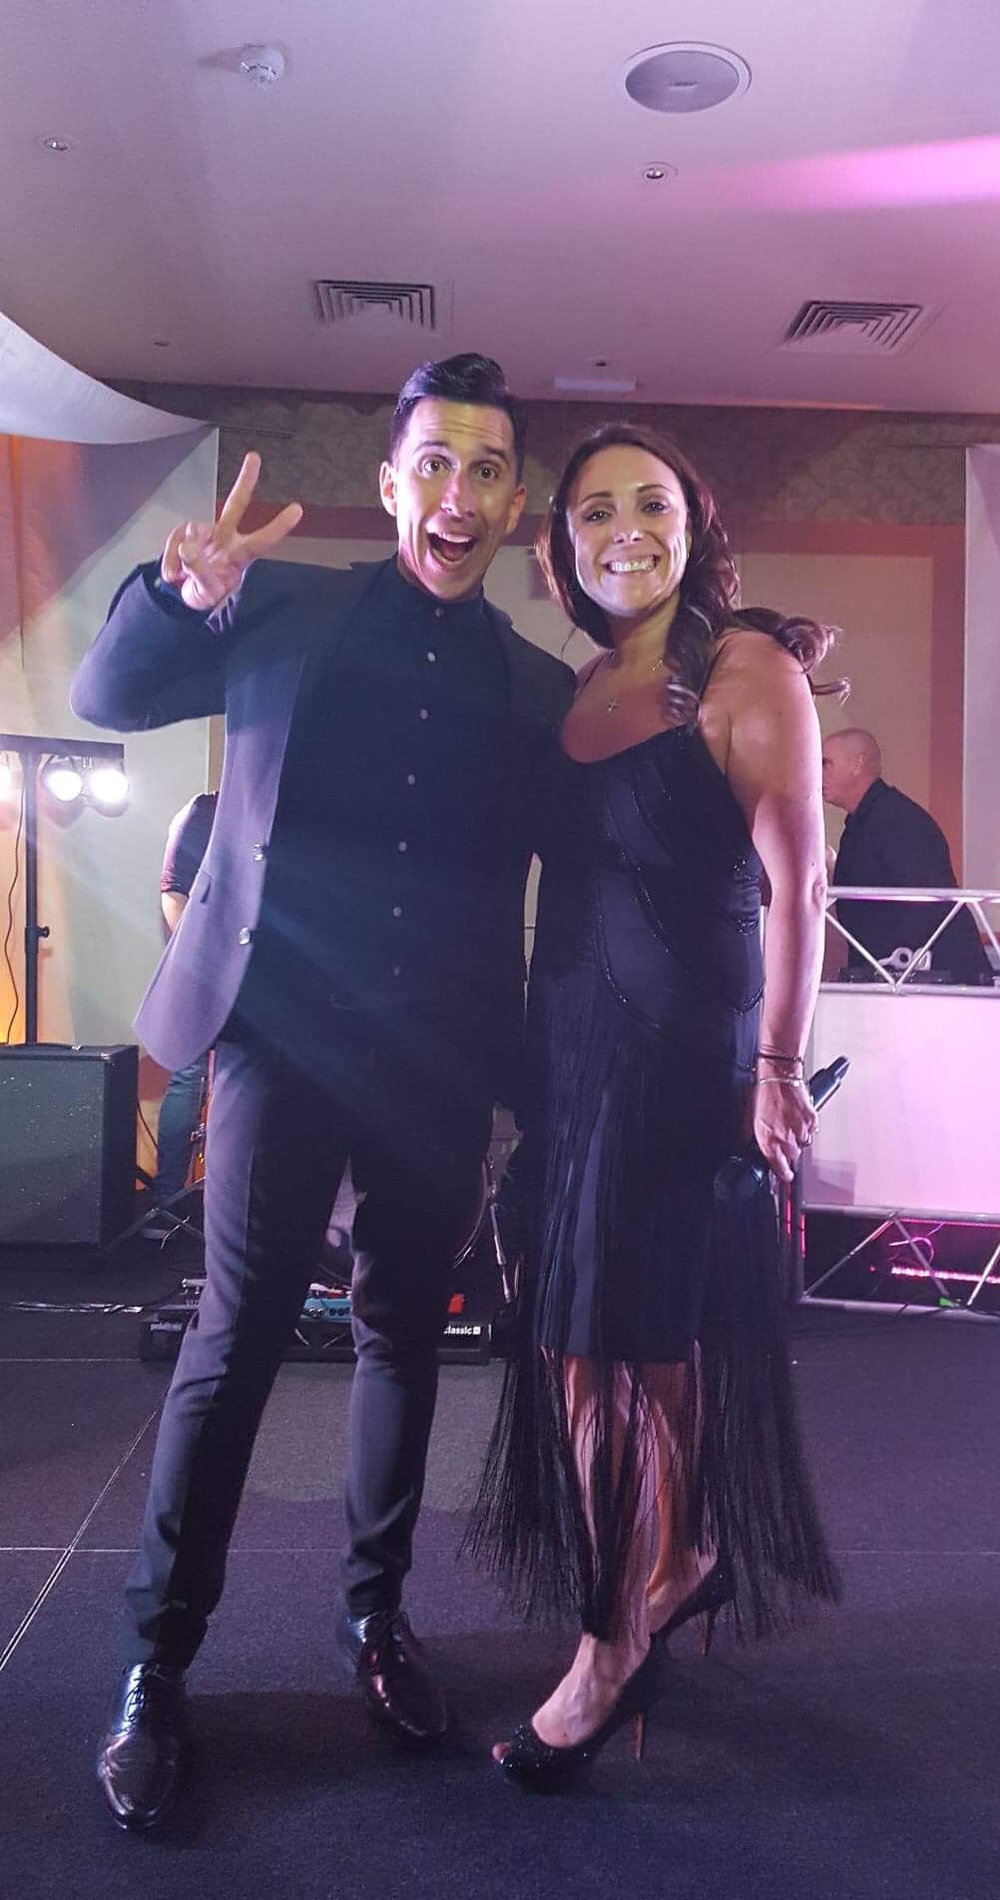 Clare_and_Russell_Kane_at_KP_10th_birthday.jpg